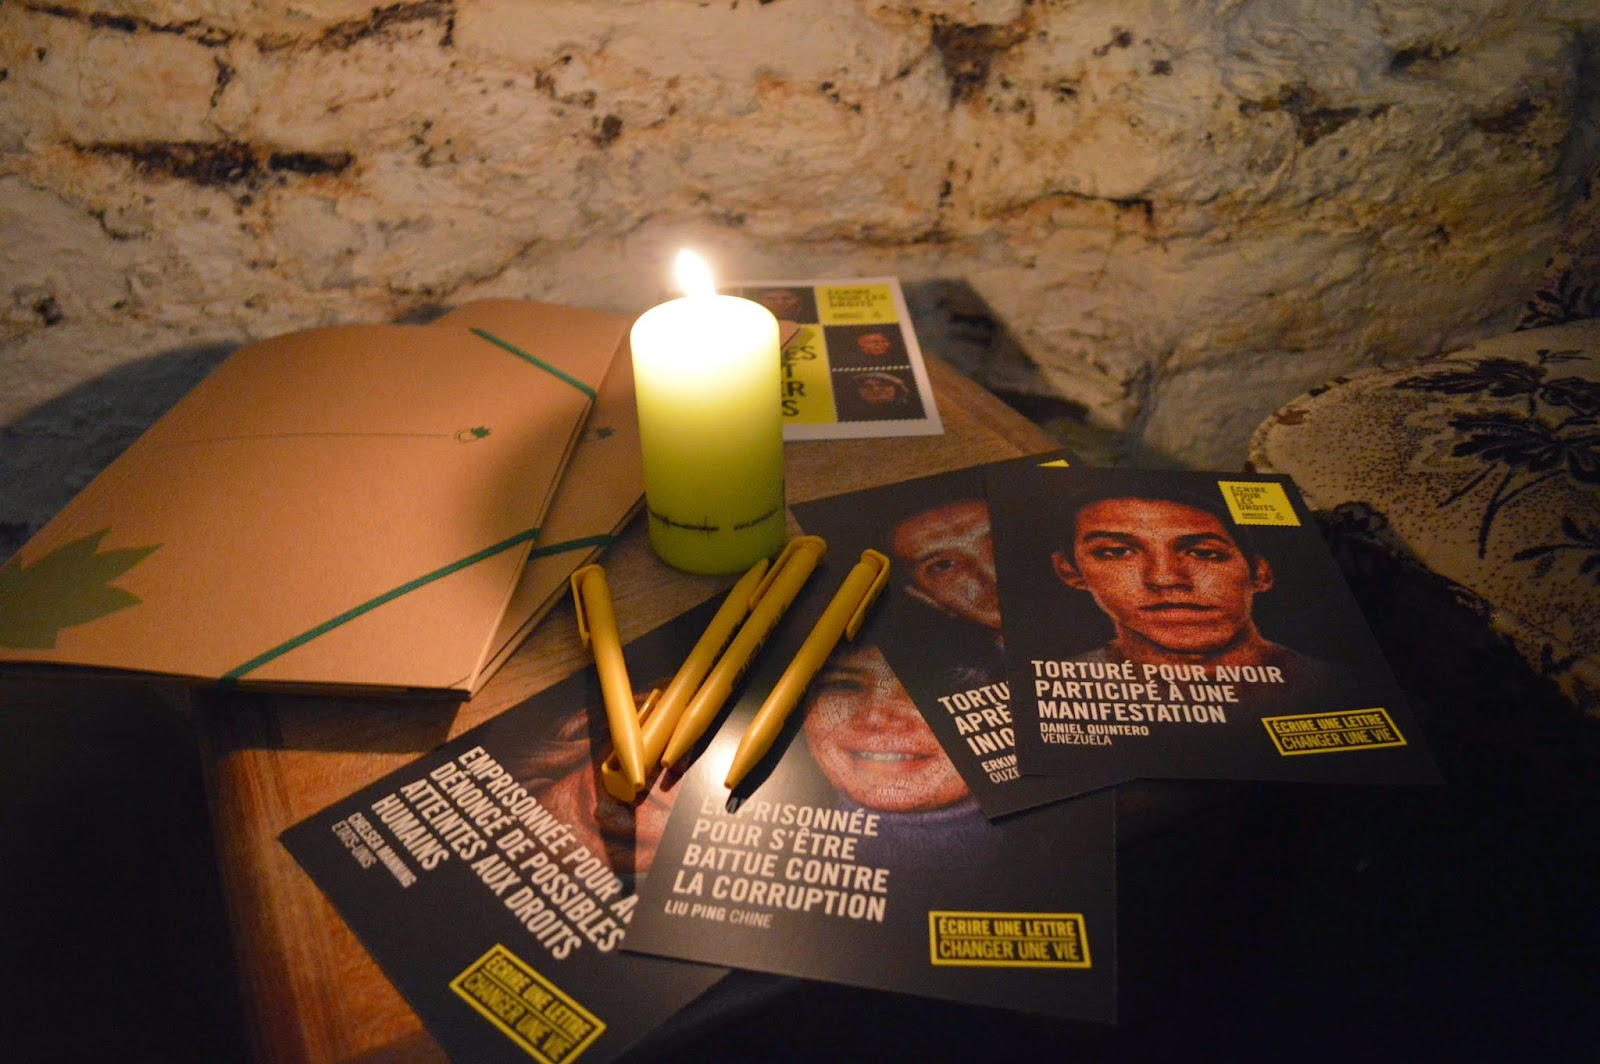 http://amnesty-luxembourg-photos.blogspot.com/2014/12/letter-writing-evening.html